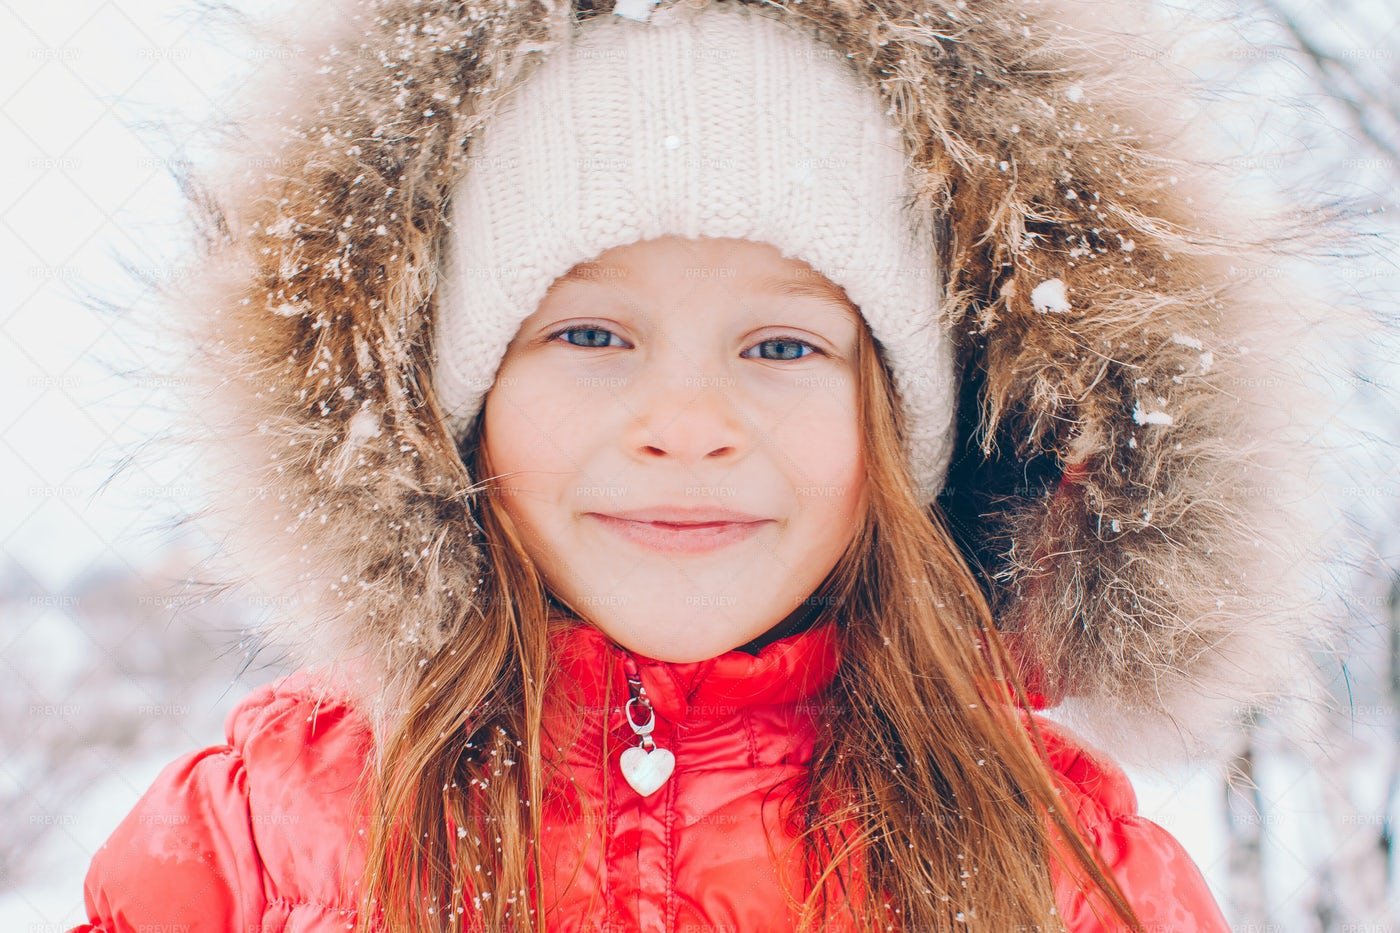 Girl In Red Puffy Coat: Stock Photos